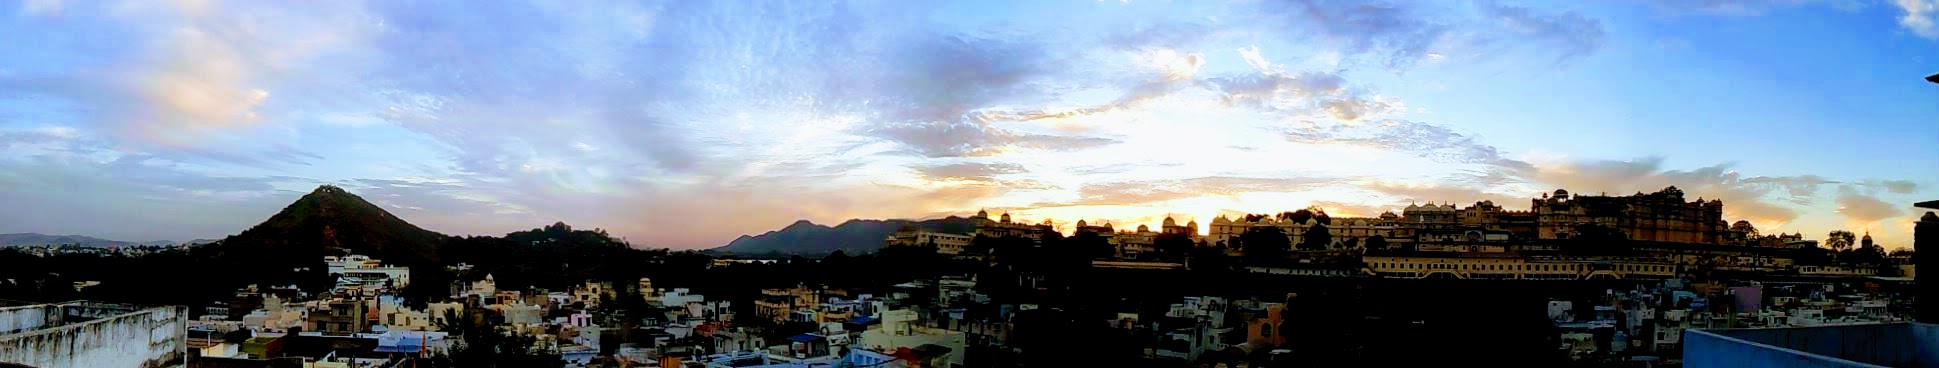 Panoroma of Old City od Udaipur